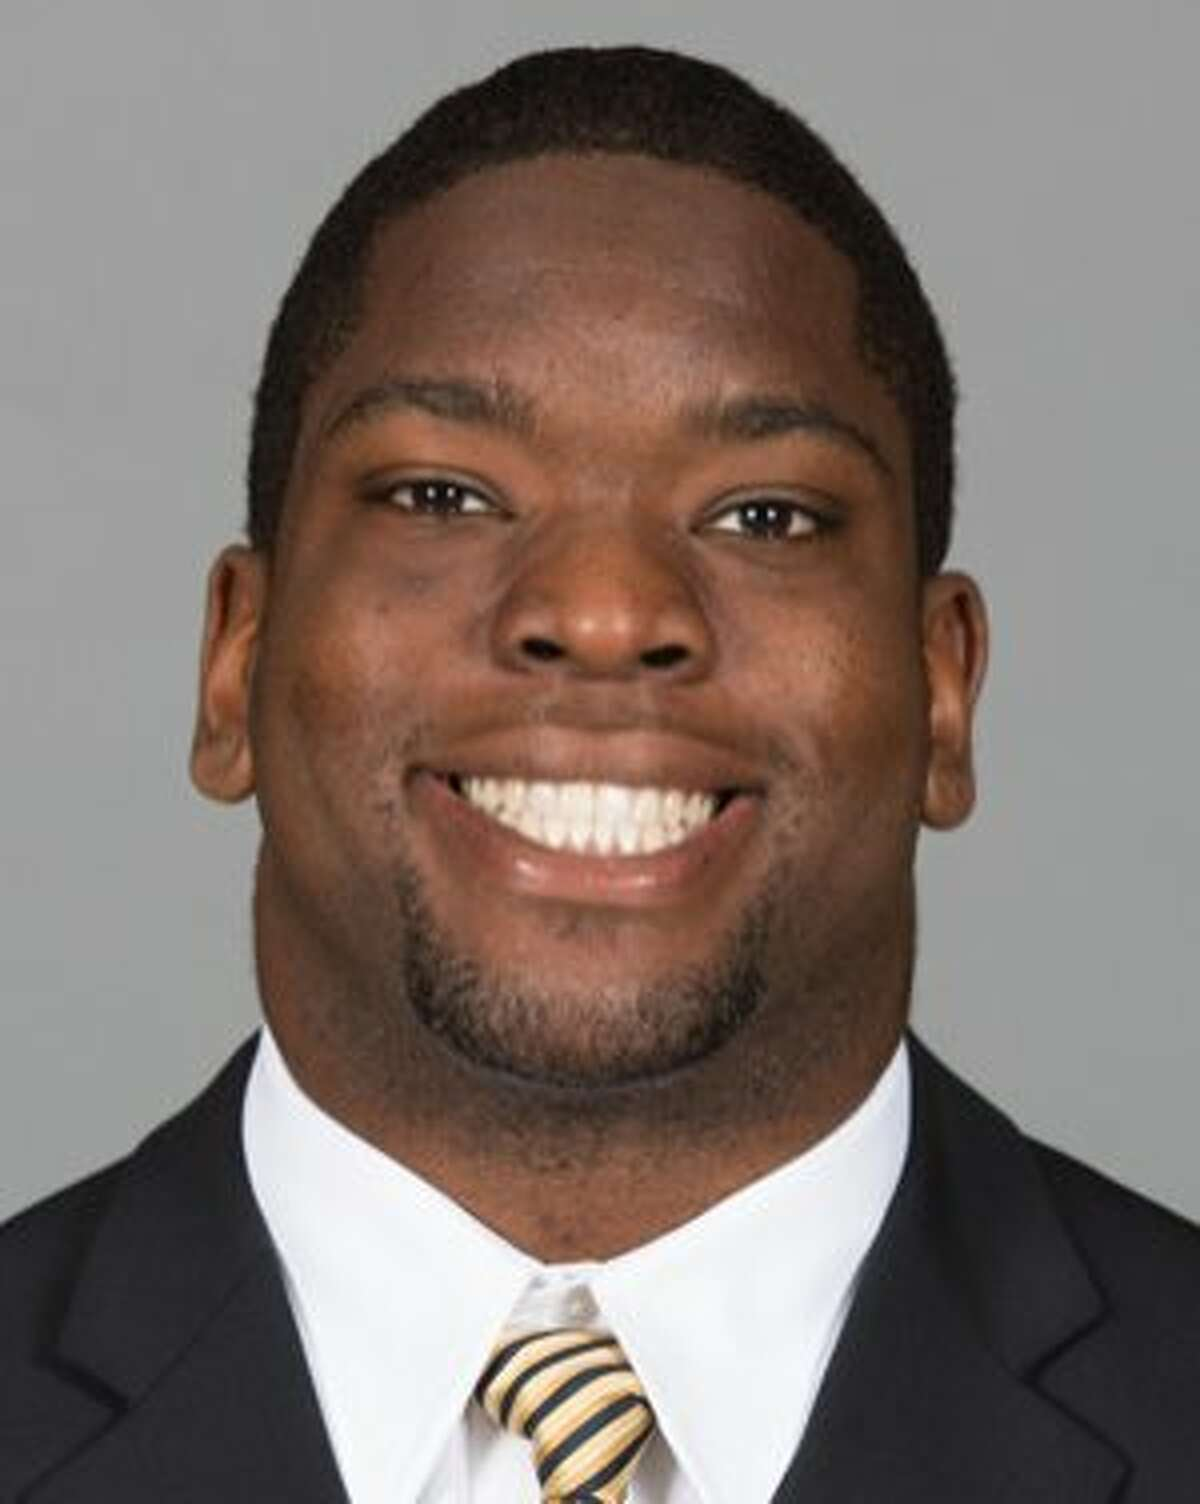 This undated file photo released by GoldenBearSports.com shows California football player Ted Agu, who died following an offseason training run Feb. 7, 2014. Attorneys representing the family of Agu are planning to file a wrongful death lawsuit against the regents of the University of California. (AP Photo/GoldenBearSports.com, Nathan Phillips, file) MANDATORY CREDIT GOLDENBEARSPORTS.COM